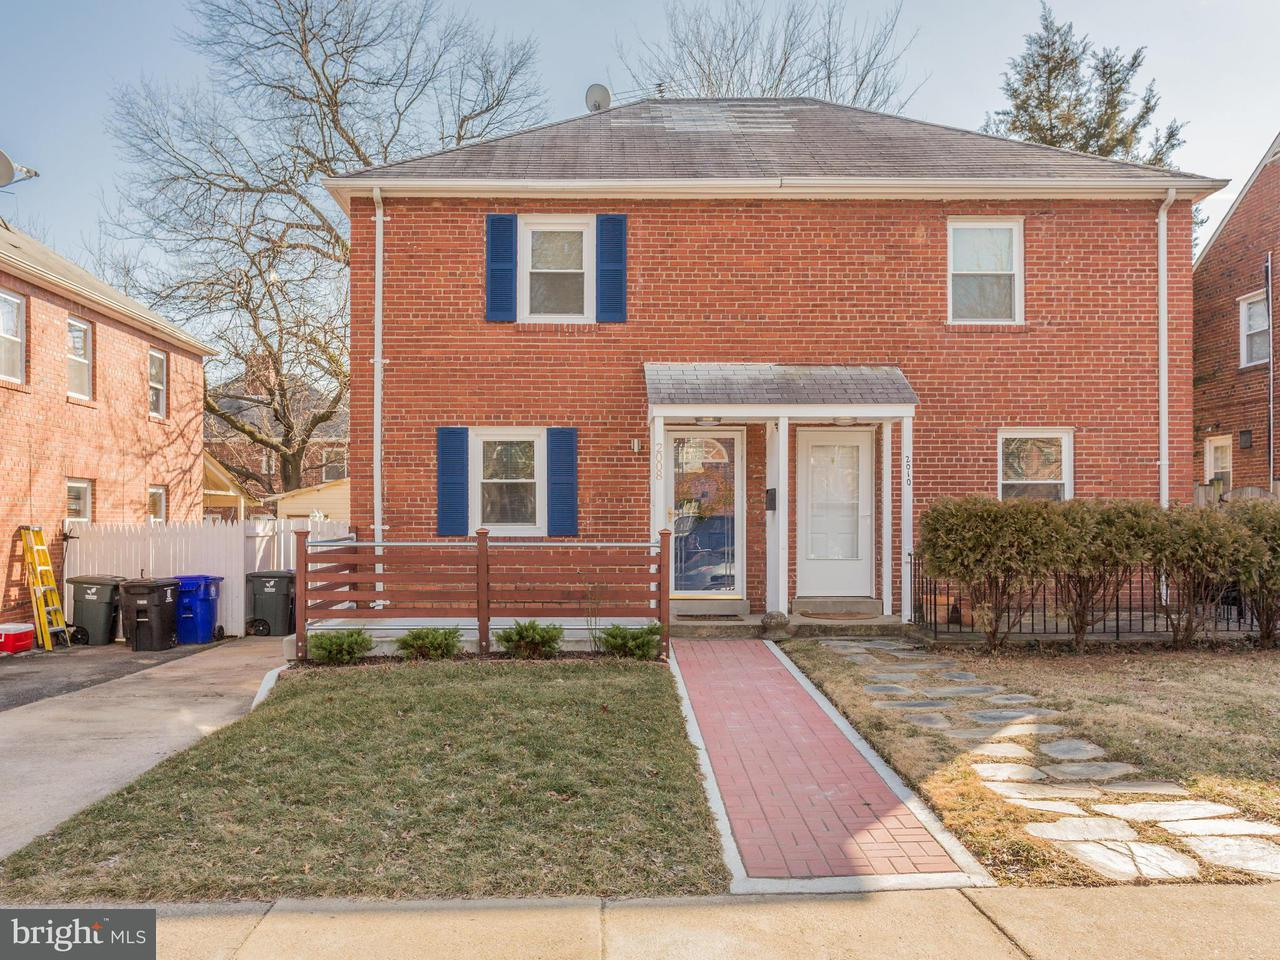 Duplex for Sale at 2008 21st St N 2008 21st St N Arlington, Virginia 22201 United States